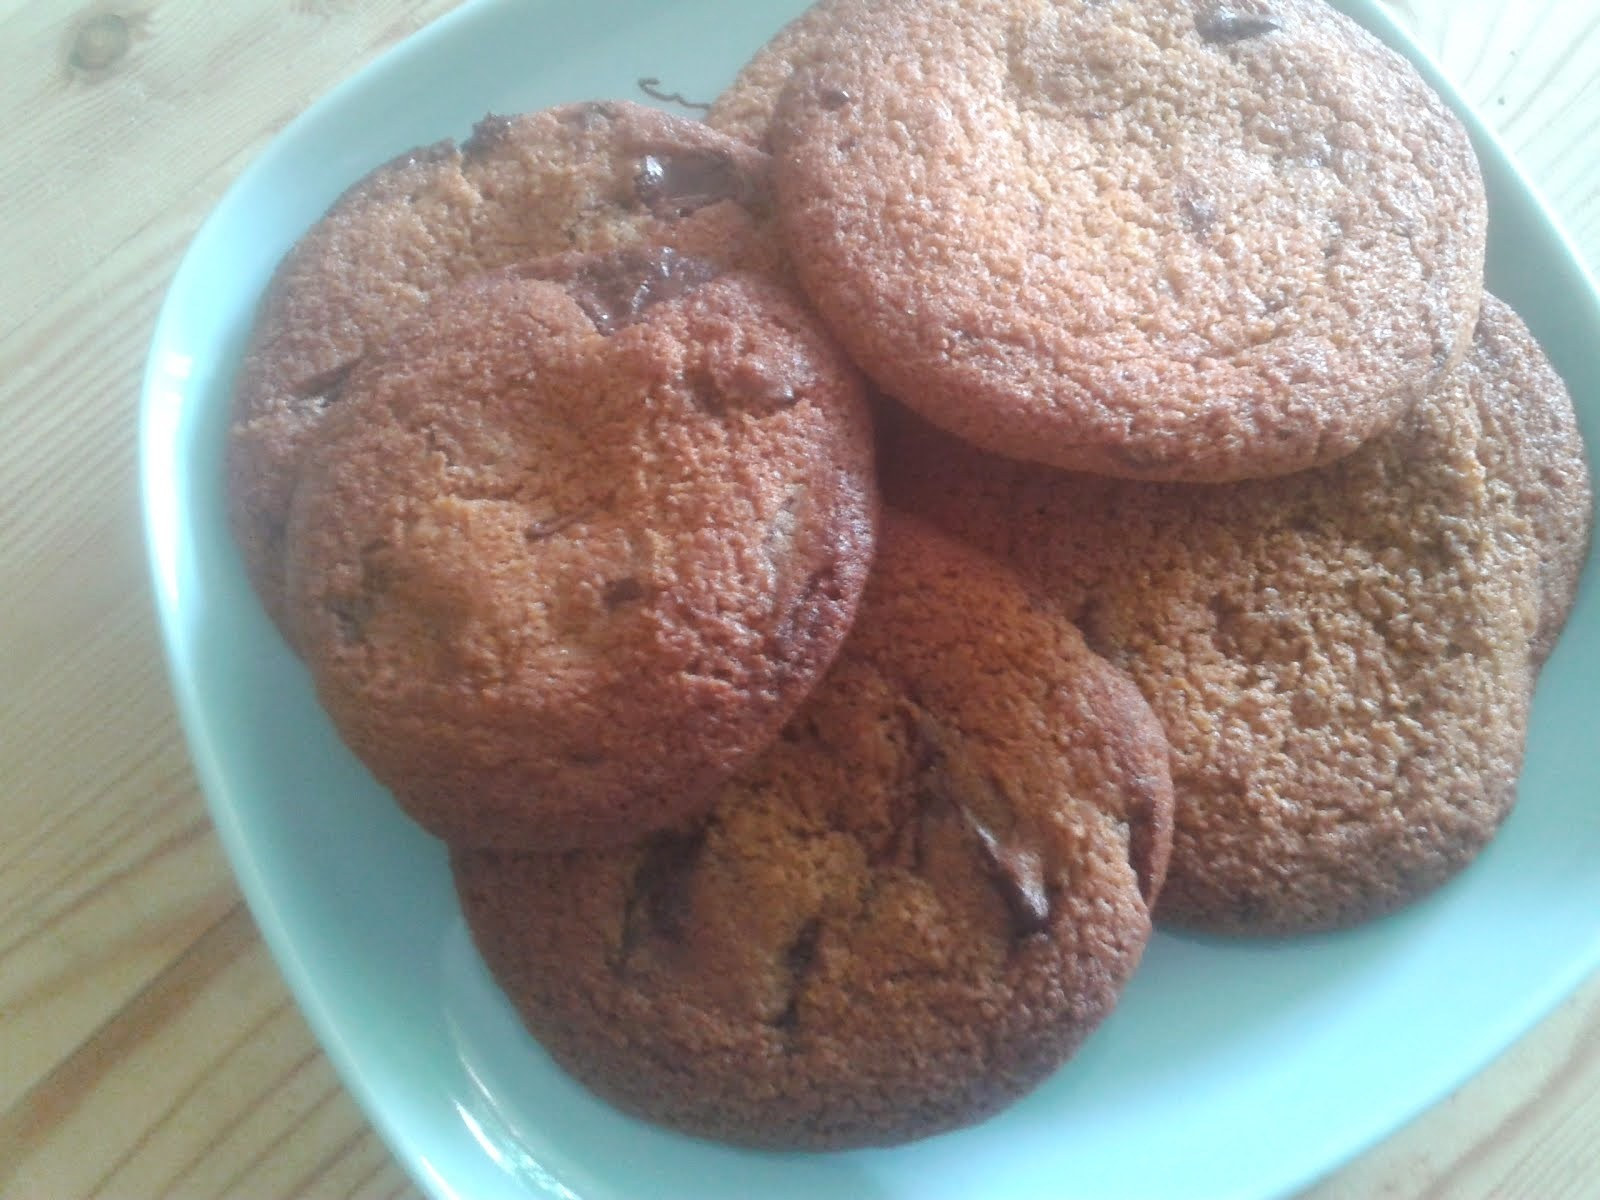 biscuits on a hot day - choc chip and wholemeal?